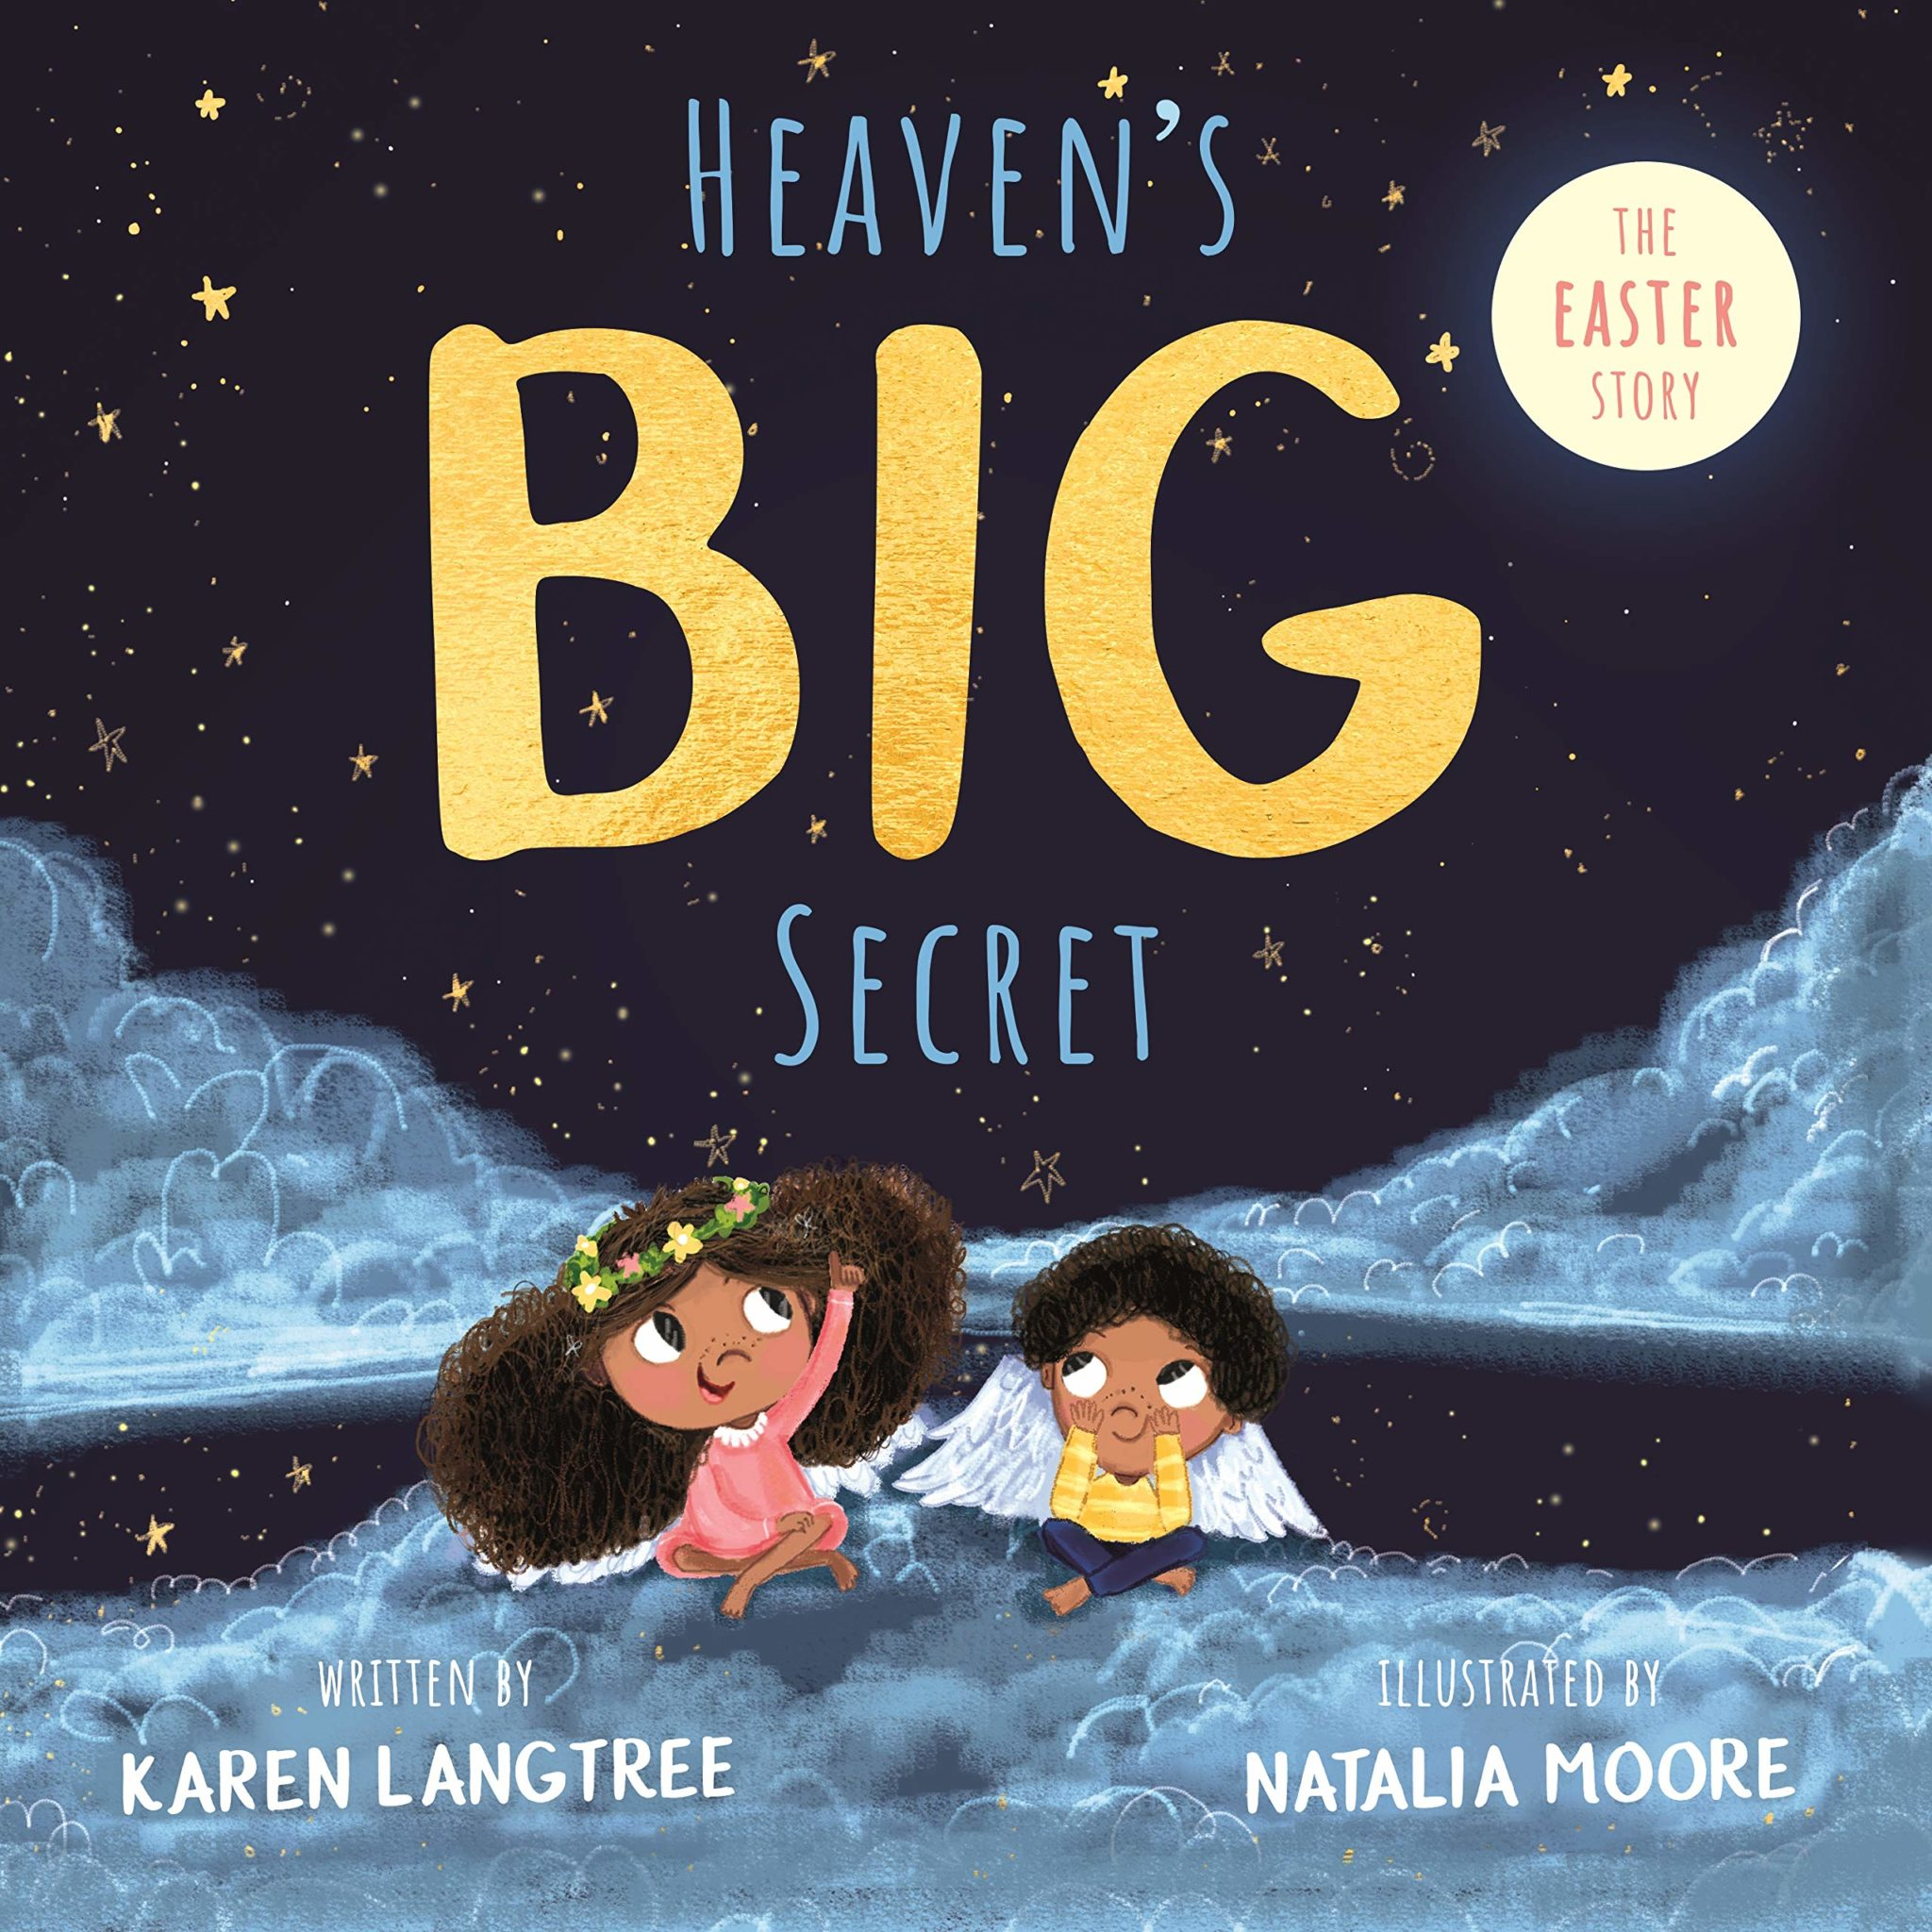 Heavens big secret - Karen Langtree. The best books for kids about race that they need on their bookshelves. in classrooms and in libraries. These 25+ suggestions have all been enjoyed by our family, and are guaranteed to raise healthy discussions about cultural diversity.